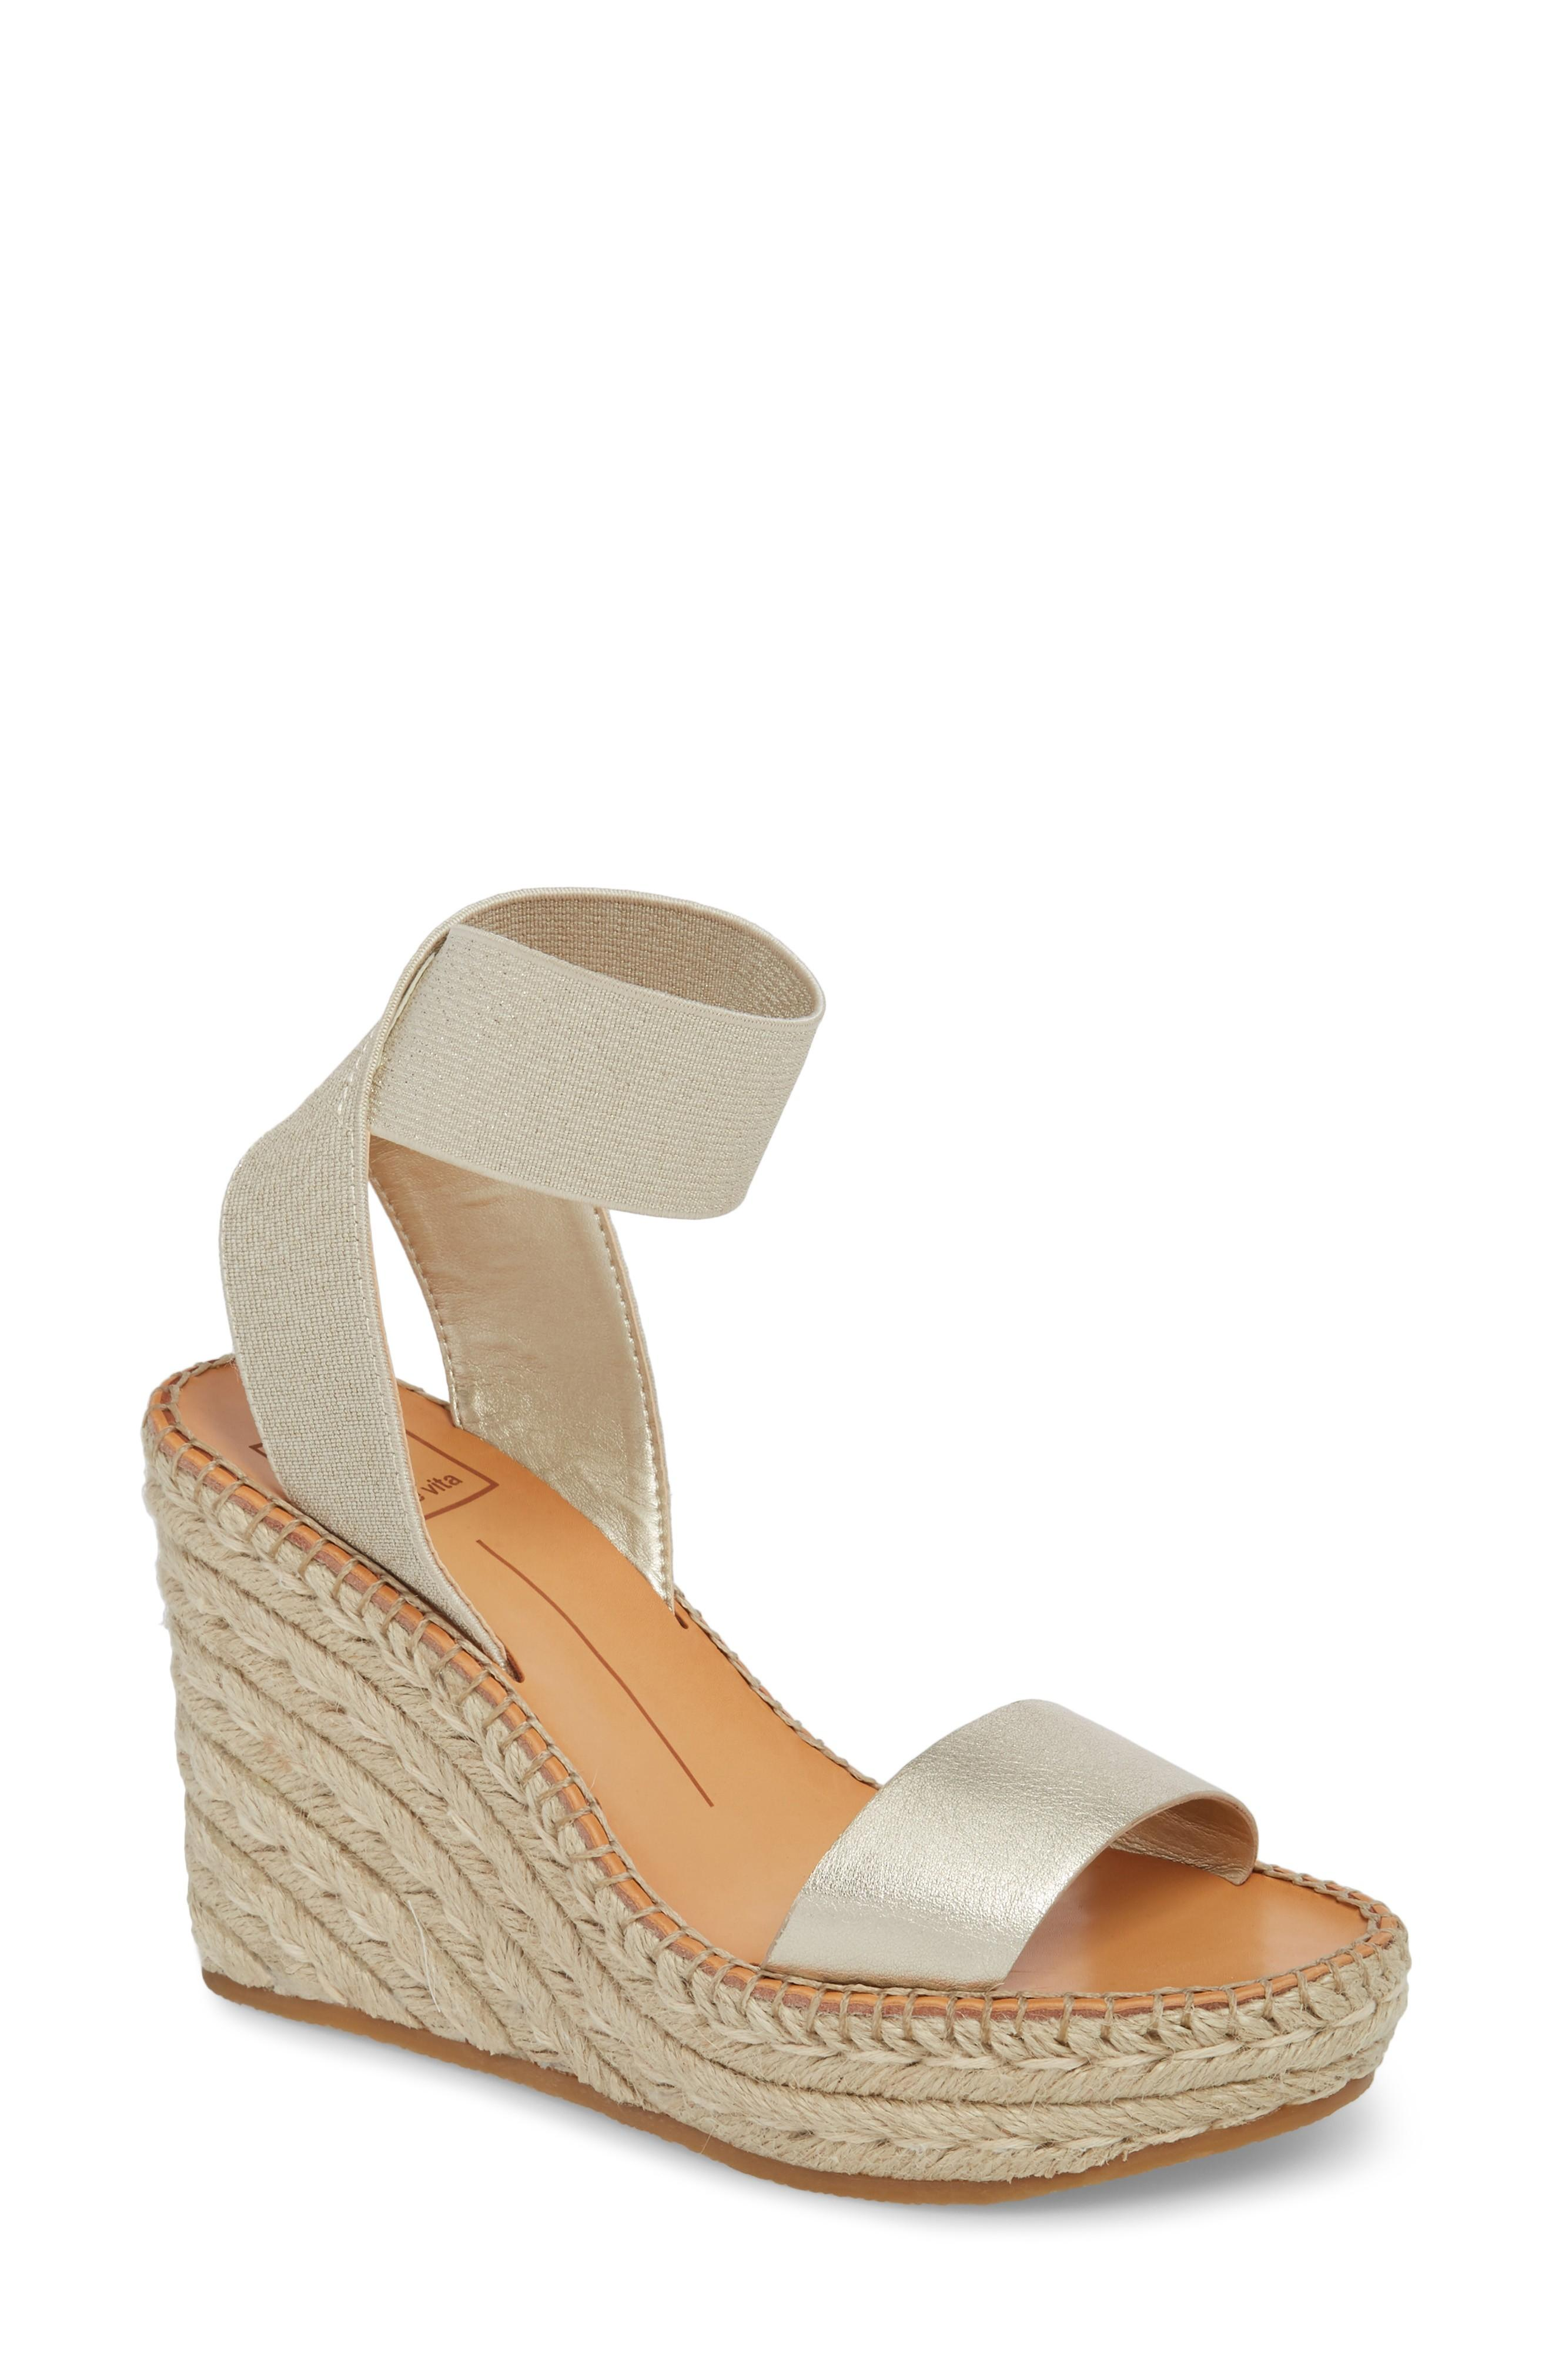 566d2c8f64c Style Name  Dolce Vita Pavlin Espadrille Wedge Sandal (Women). Style  Number  5555757.